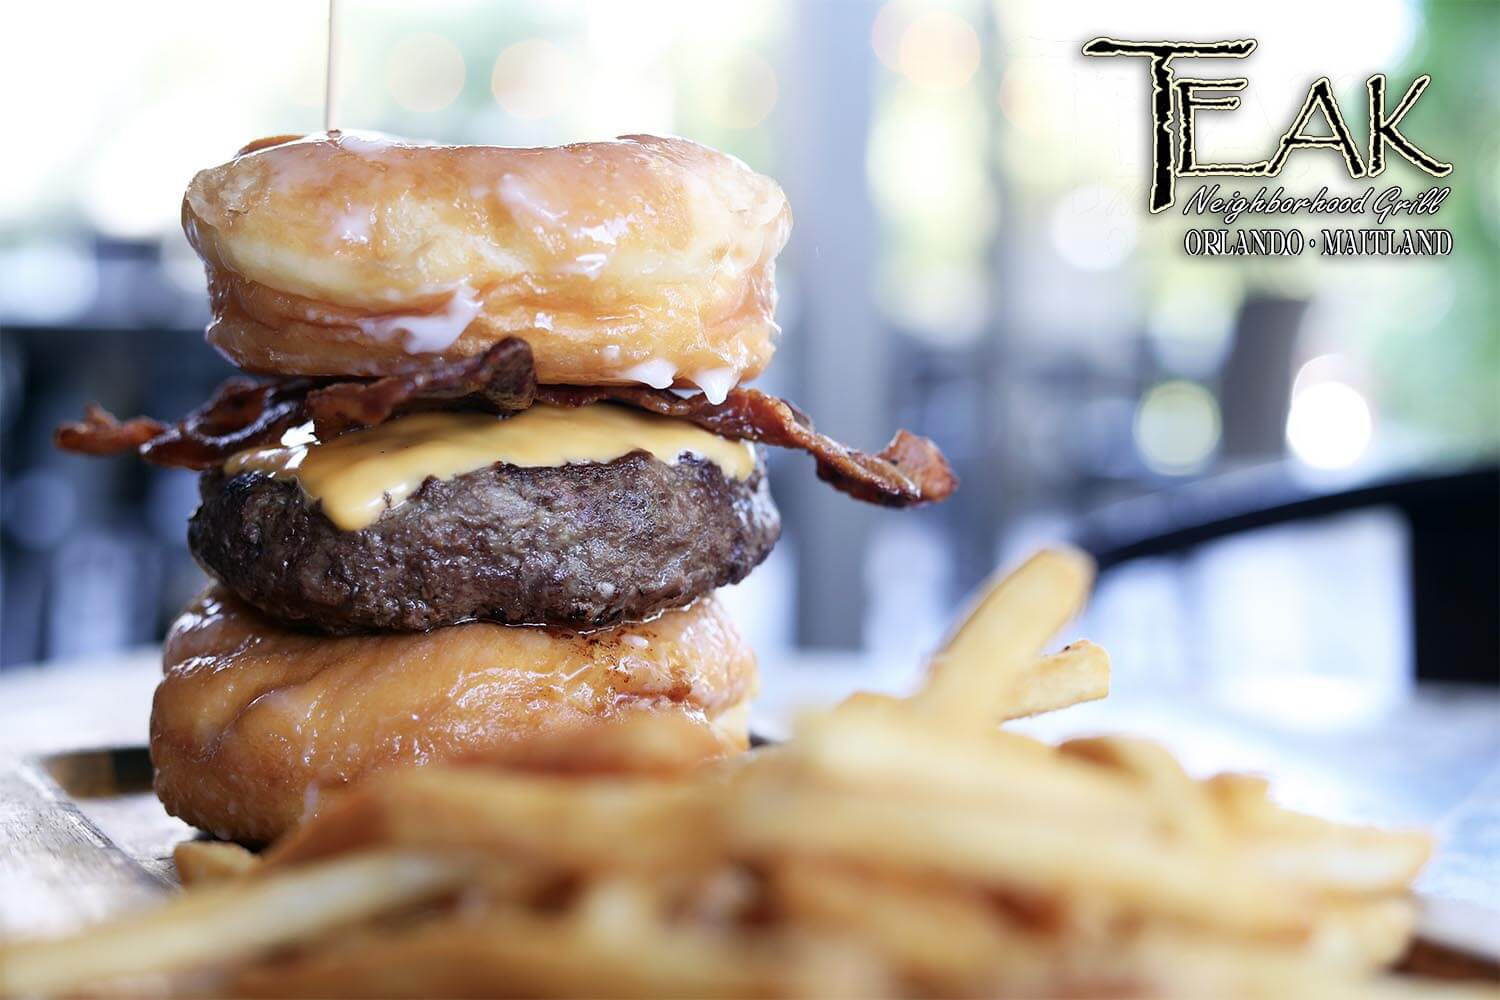 Donut Burger with Bacon and Cheese and side of fries